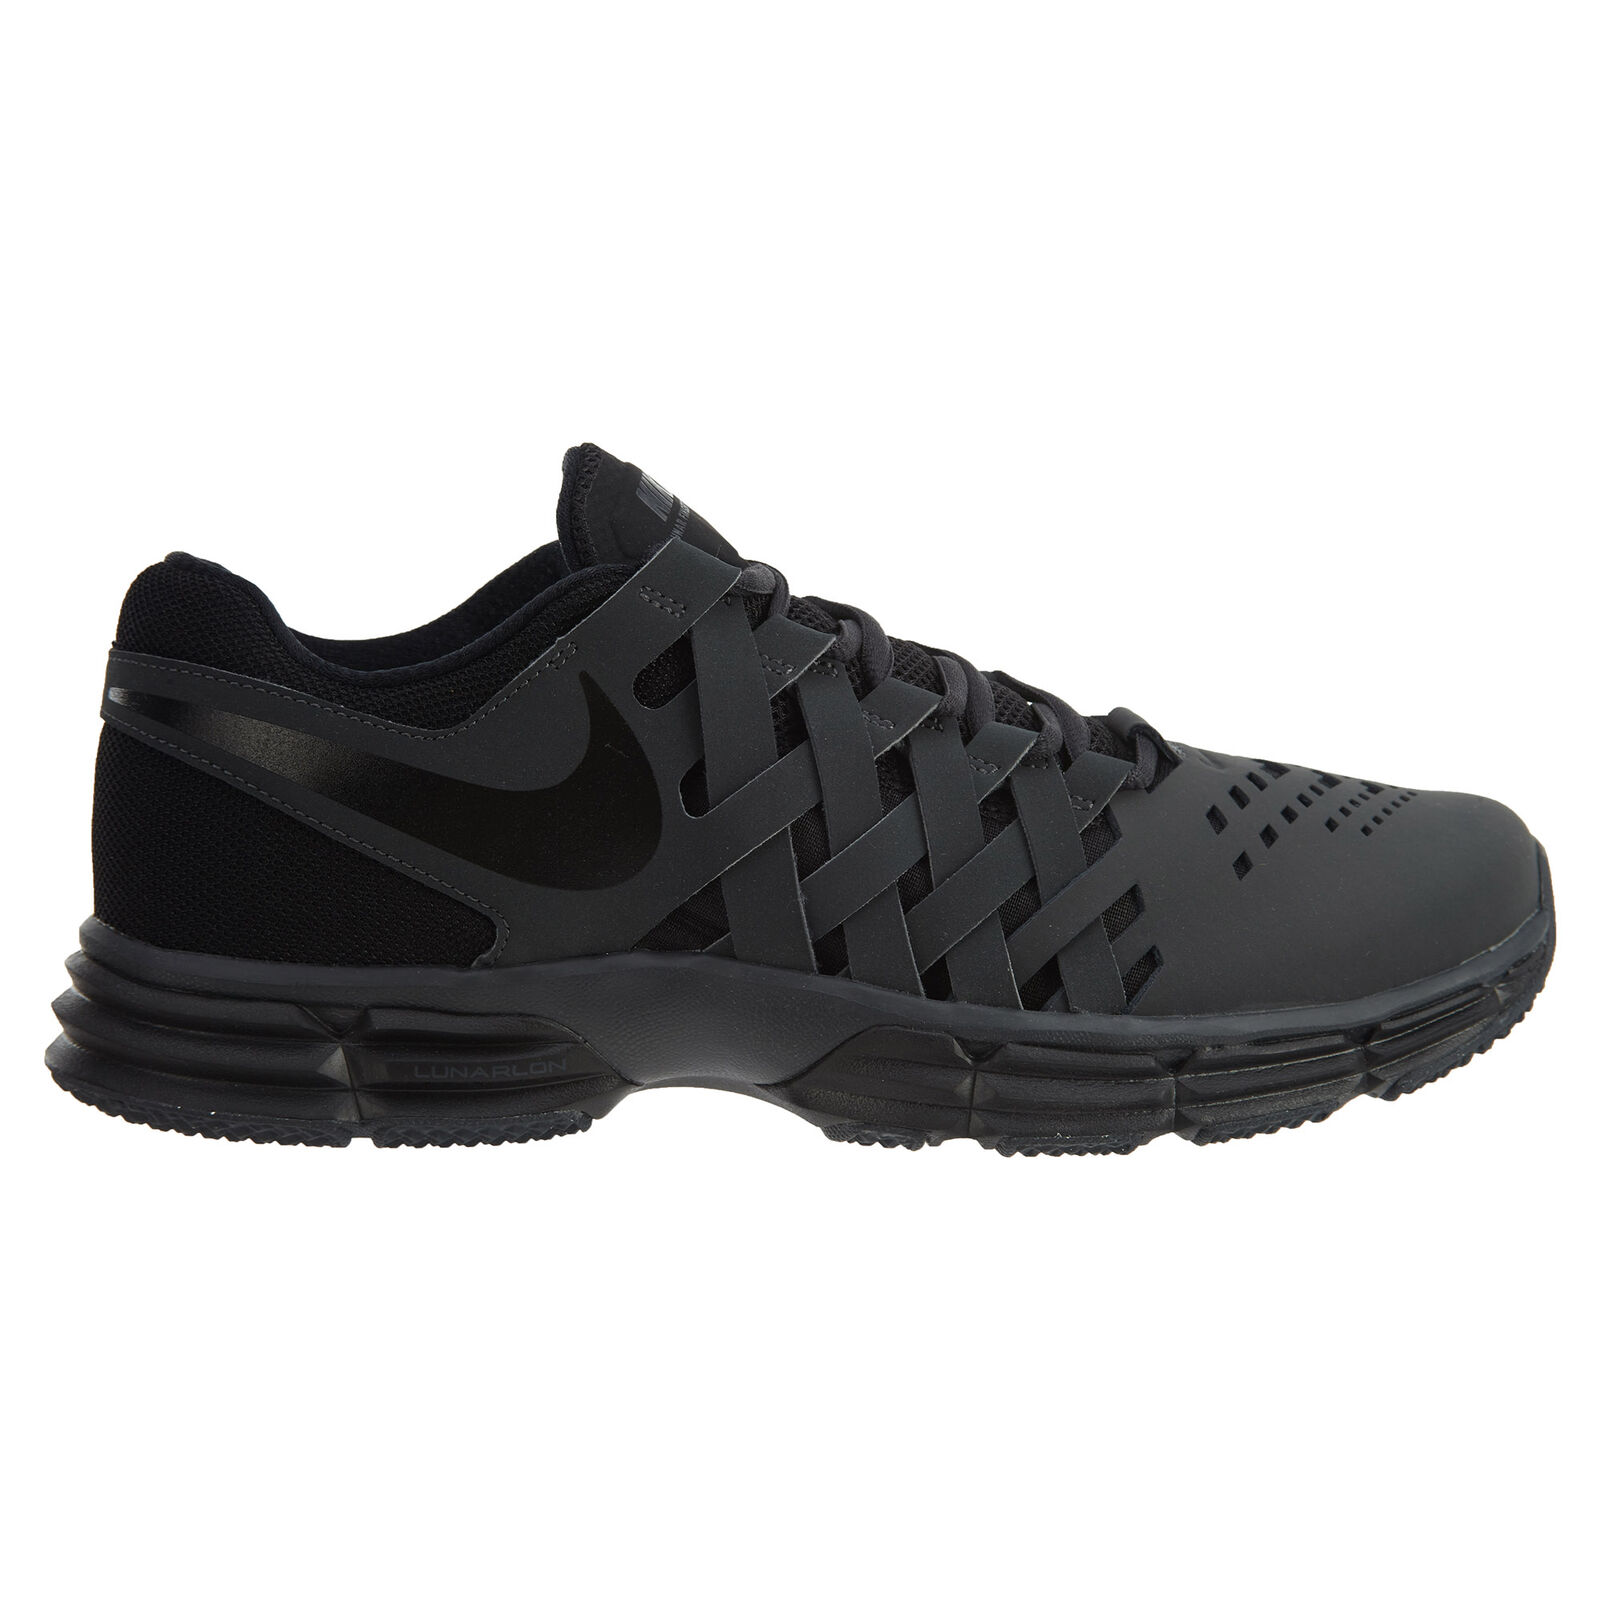 Nike Lunar Fingertrap TR Mens 898066-010 Anthracite Black Training shoes Size 8